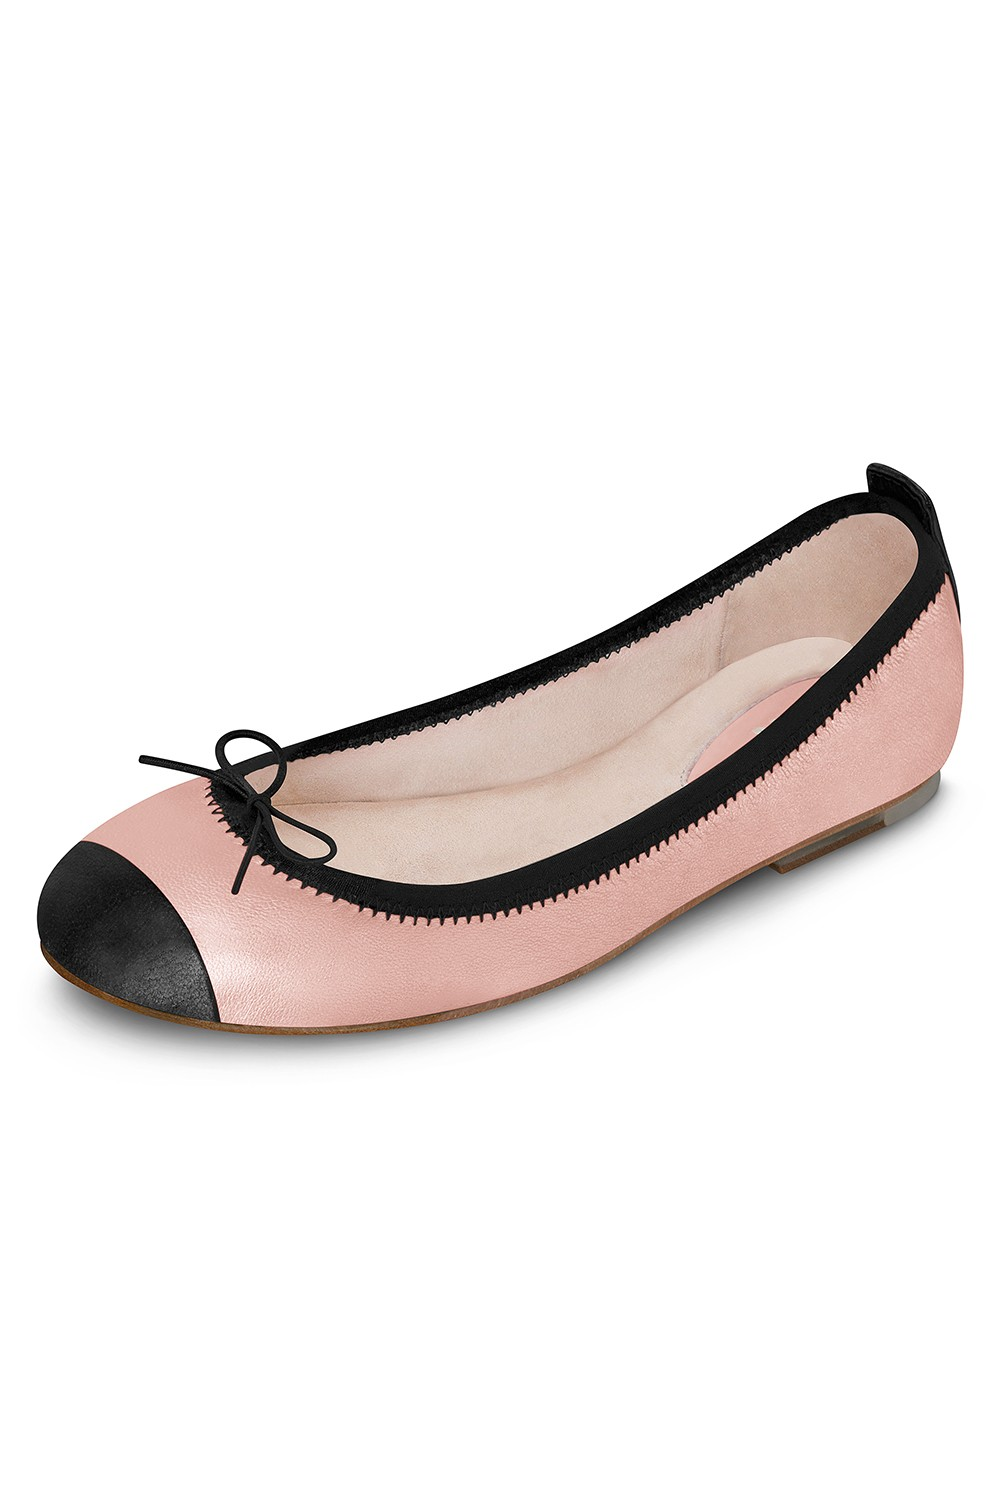 209e7d1dd BLOCH® Women's Ballet Flat Shoes - BLOCH® Shop UK